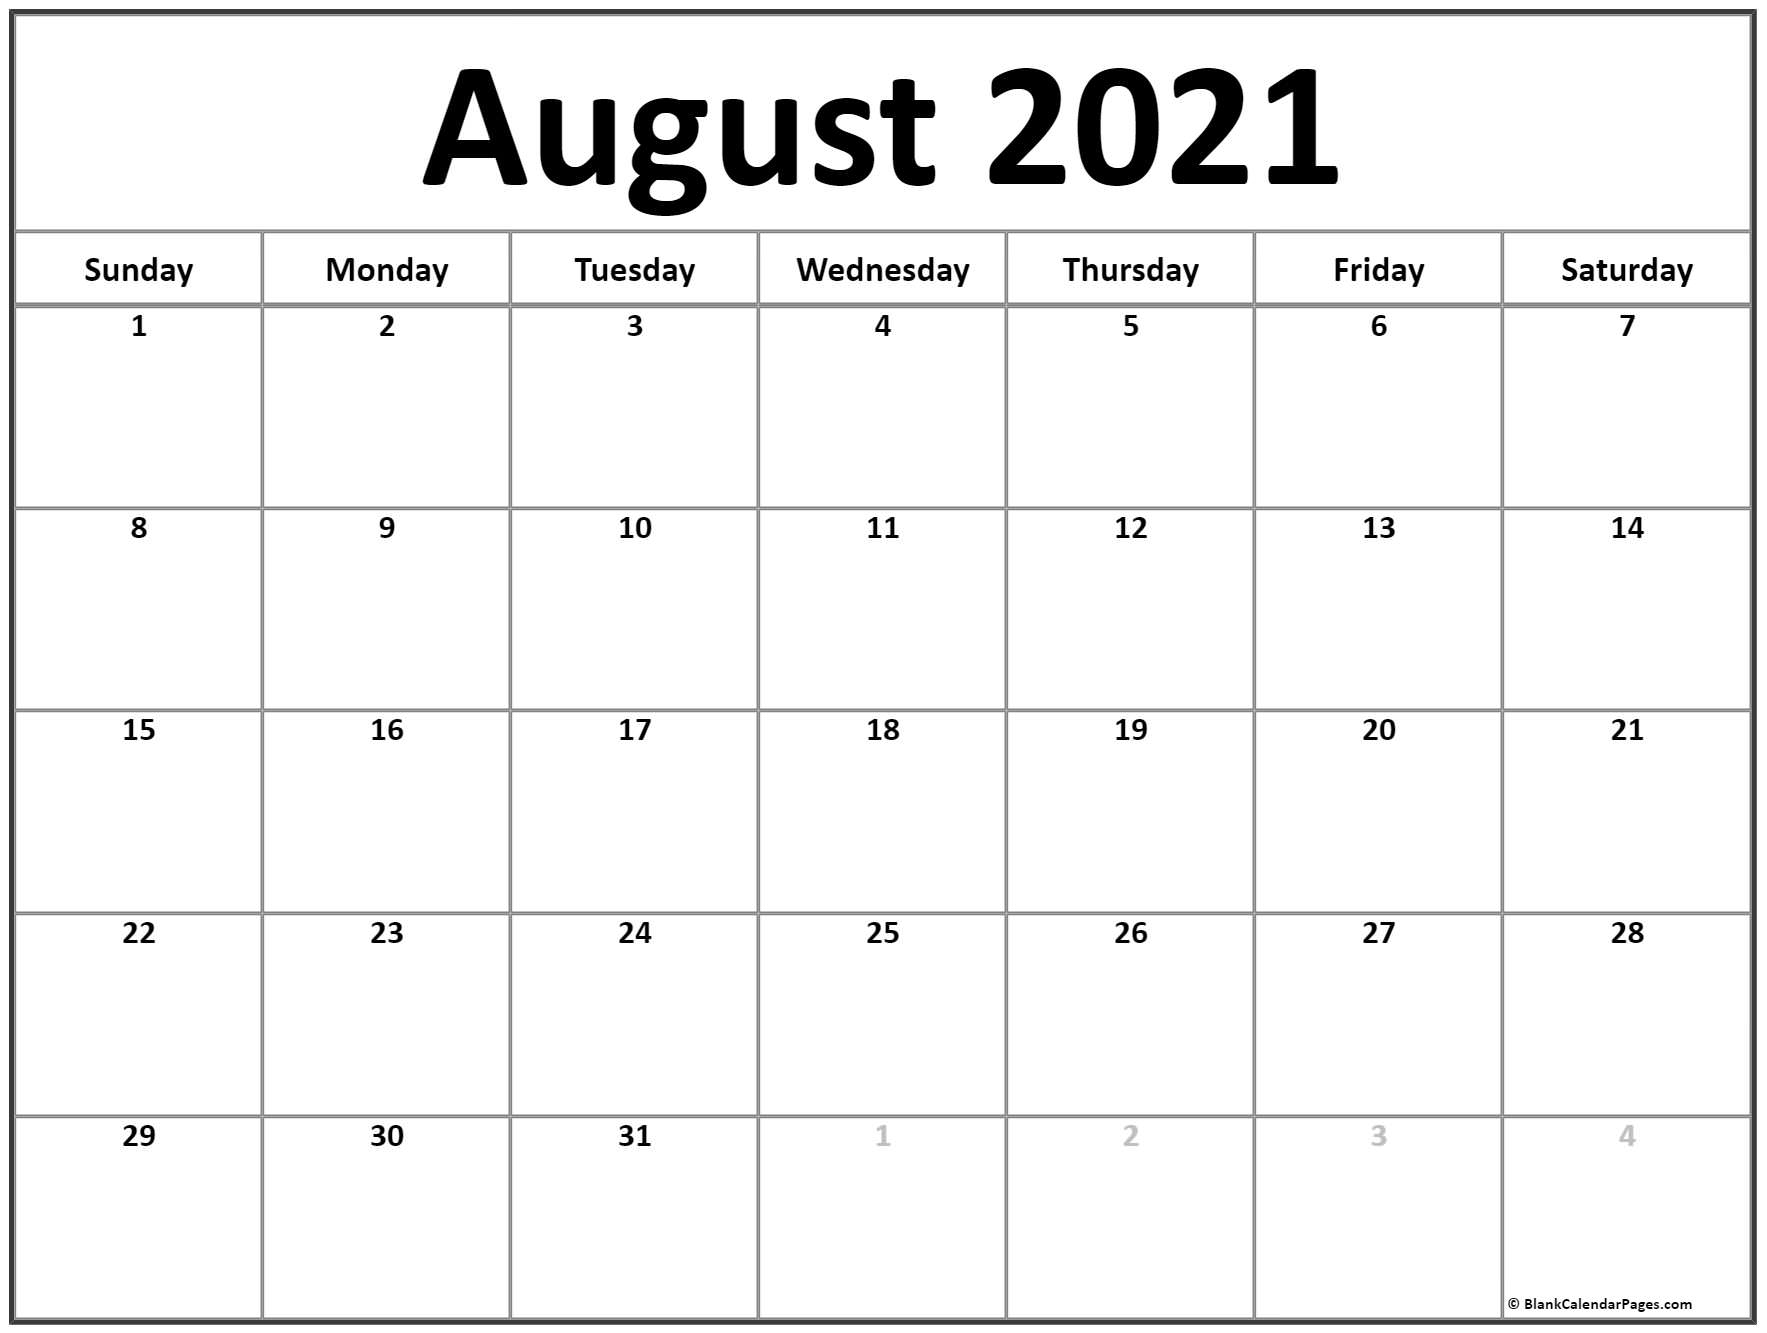 August 2021 Calendar | 56+ Templates Of 2021 Printable